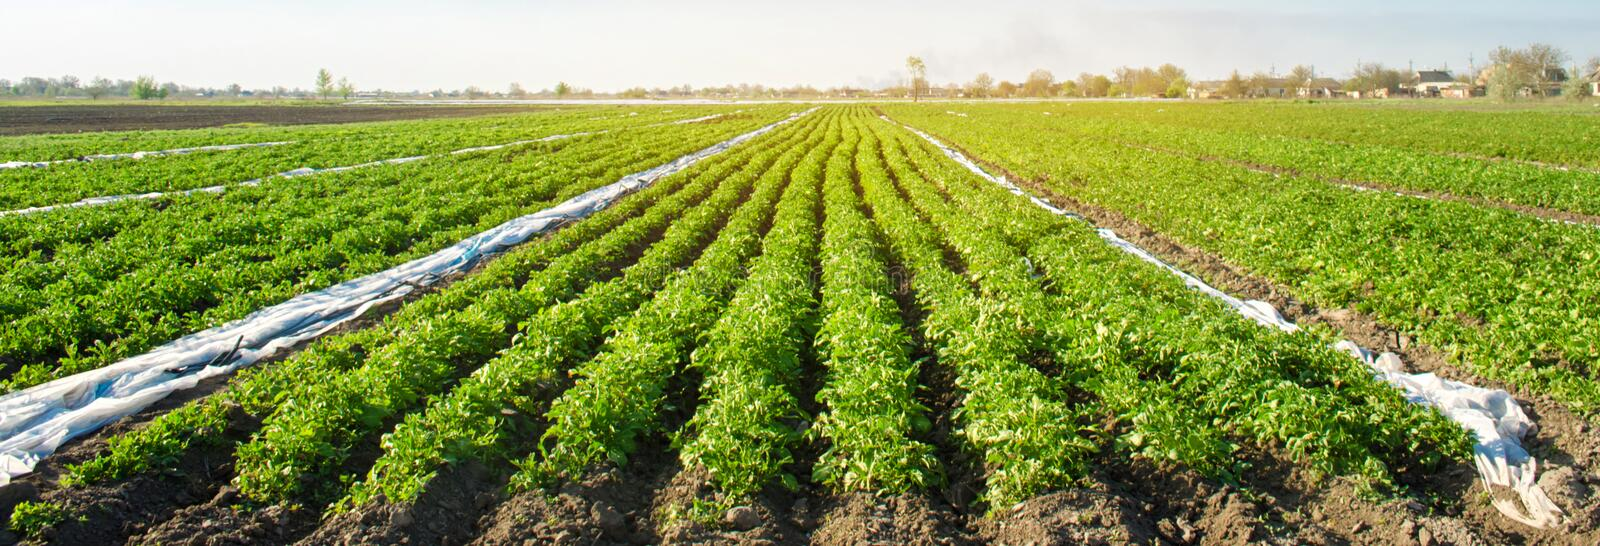 Potato plantations are growing on the field on a sunny day. Beautiful agricultural landscape. Growing organic vegetables. Agriculture. Farming. Selective focus stock image